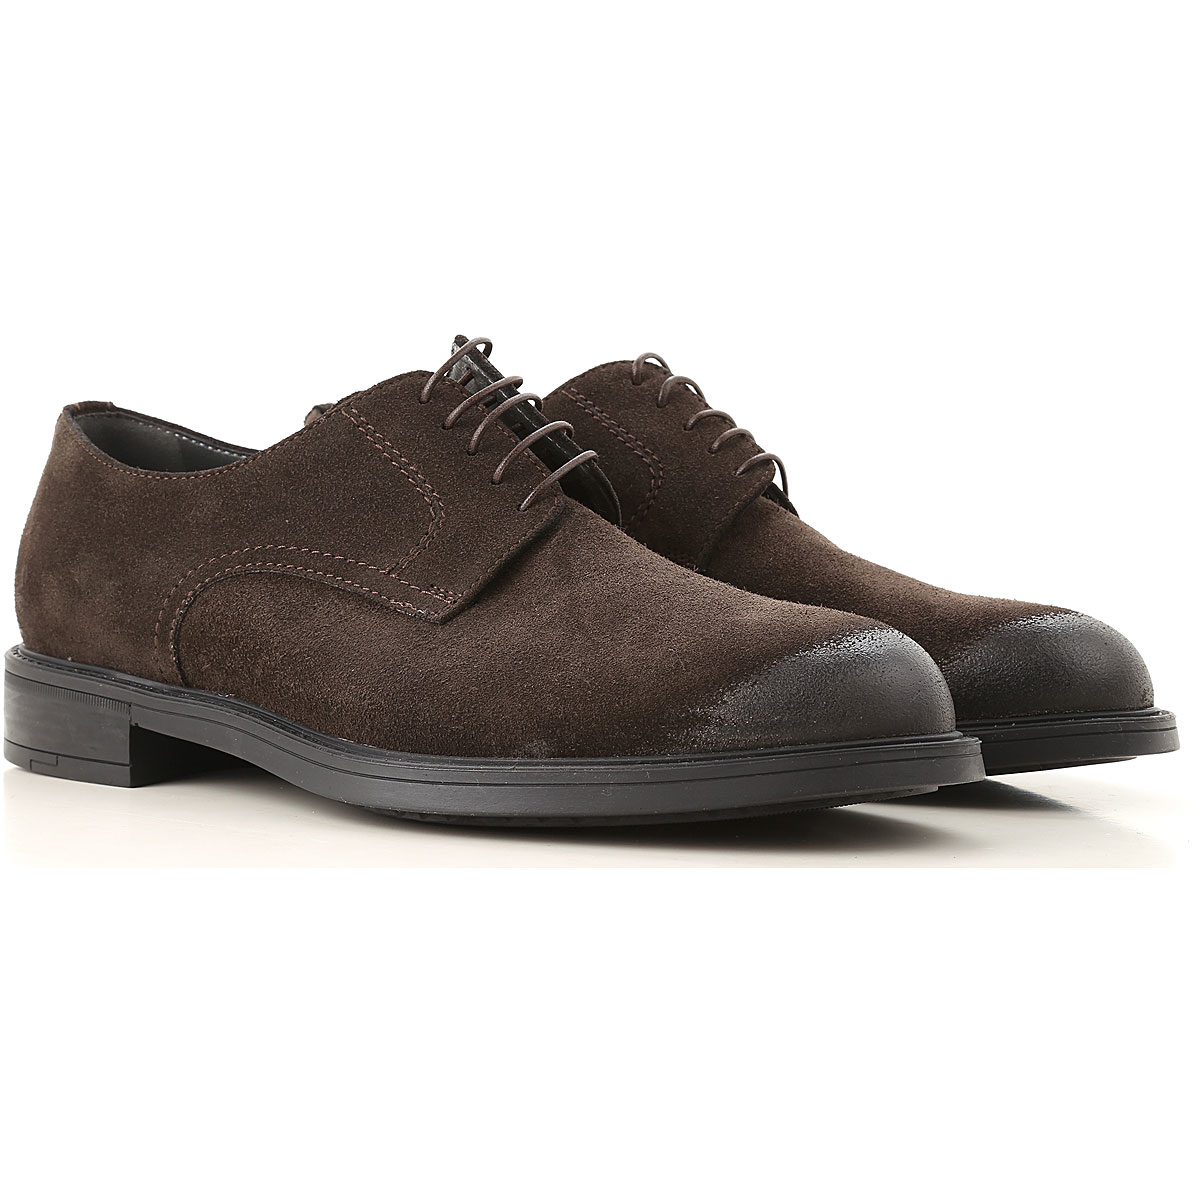 Moreschi Lace Up Shoes for Men Oxfords 10 6.5 7 8 8.5 Derbies and Brogues On Sale UK - GOOFASH